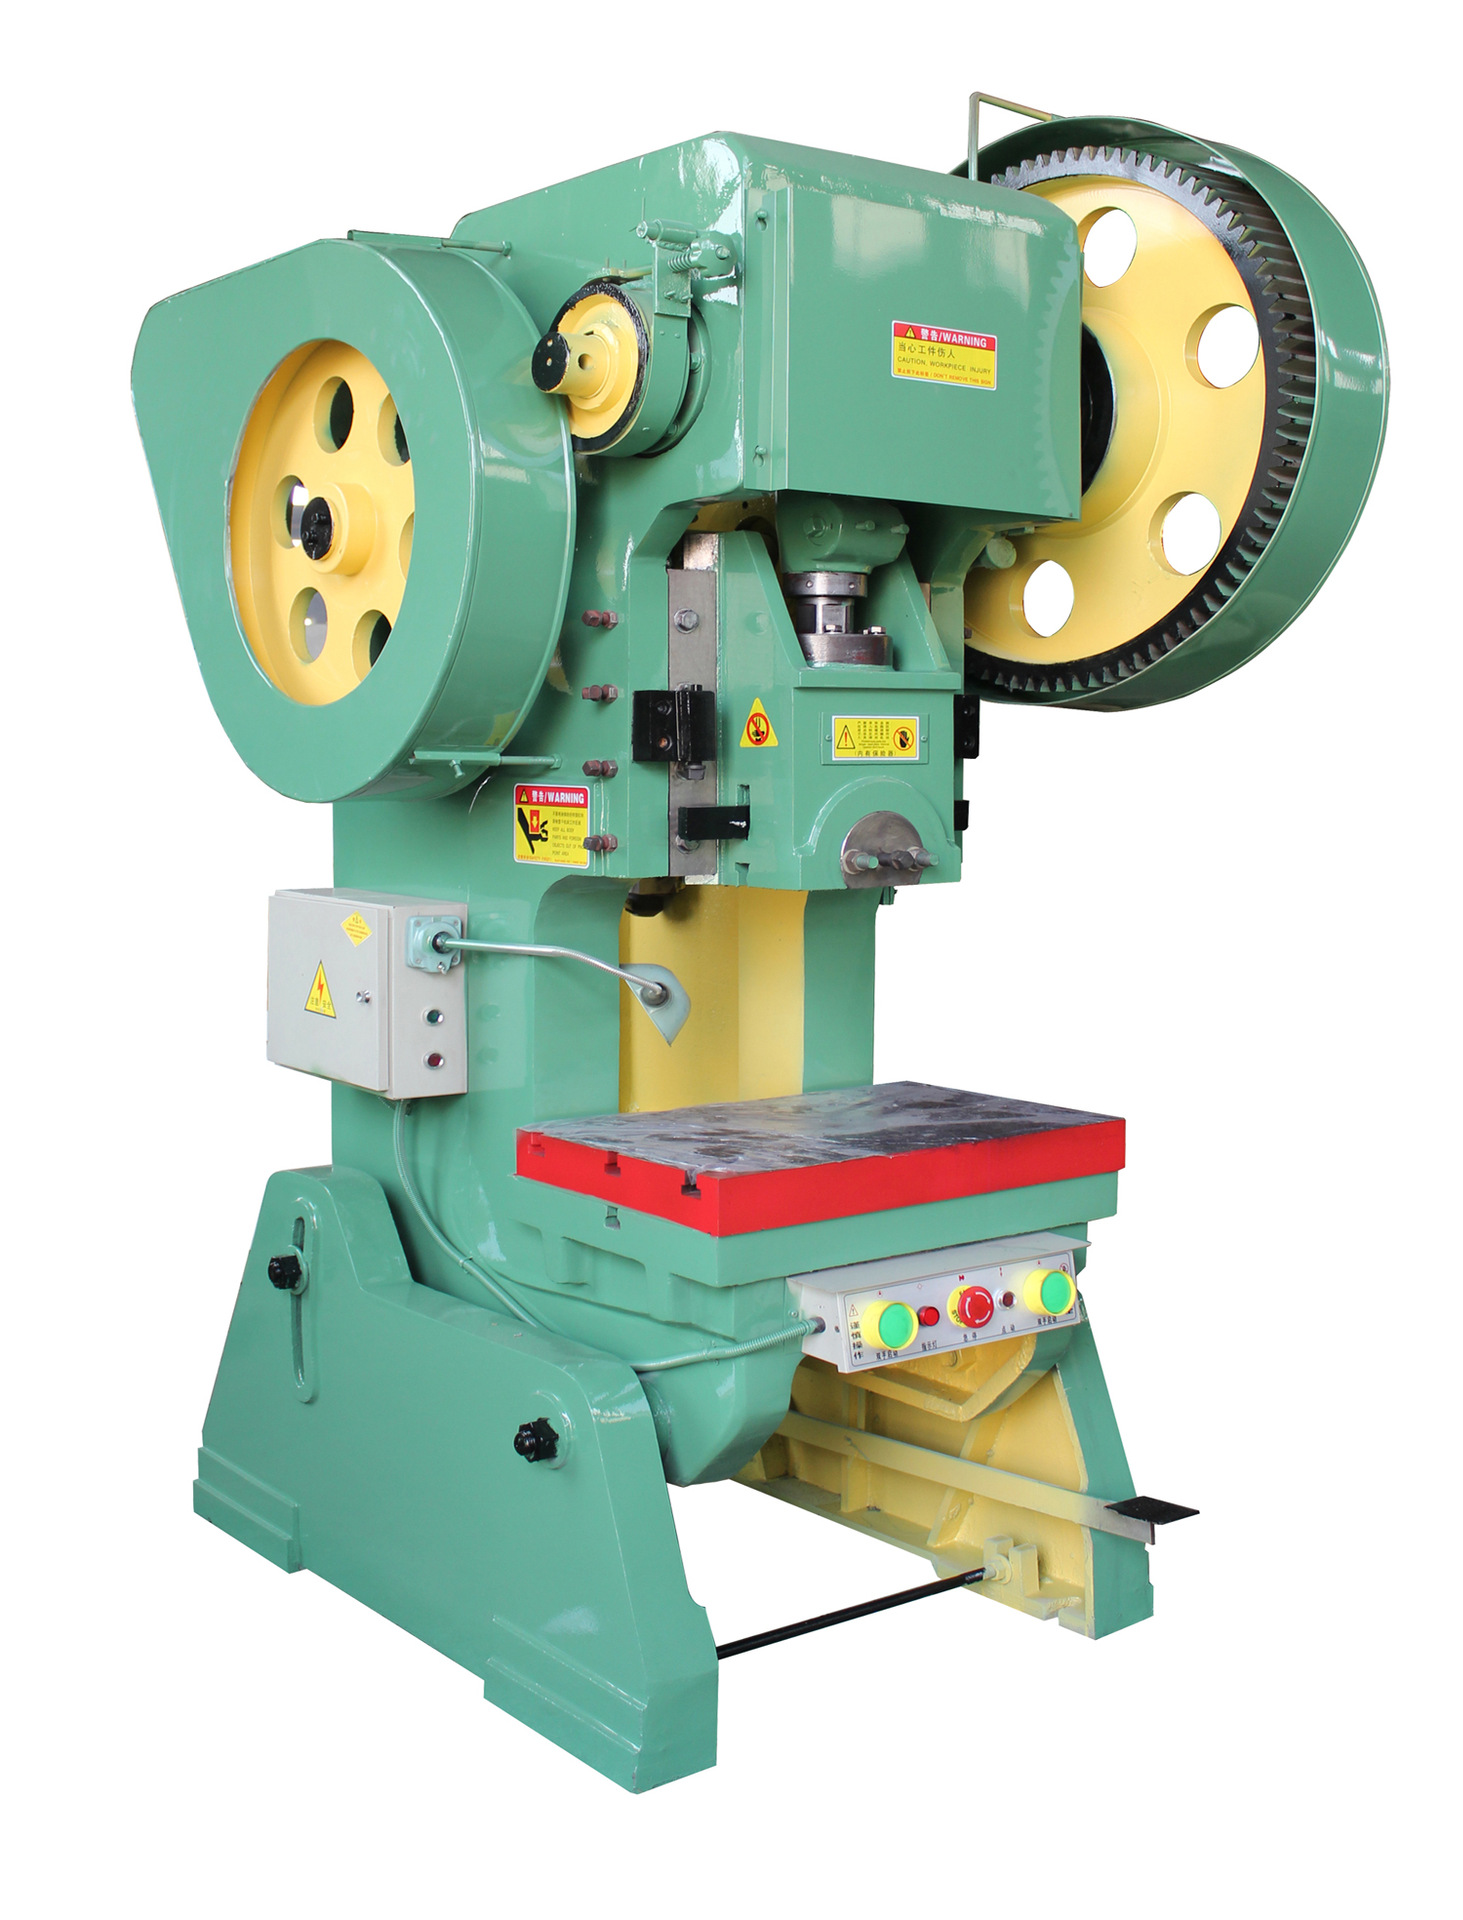 OEM J23-25T Small Power Press for Sale, Small Punching Machine for Flat Washer Making Machine